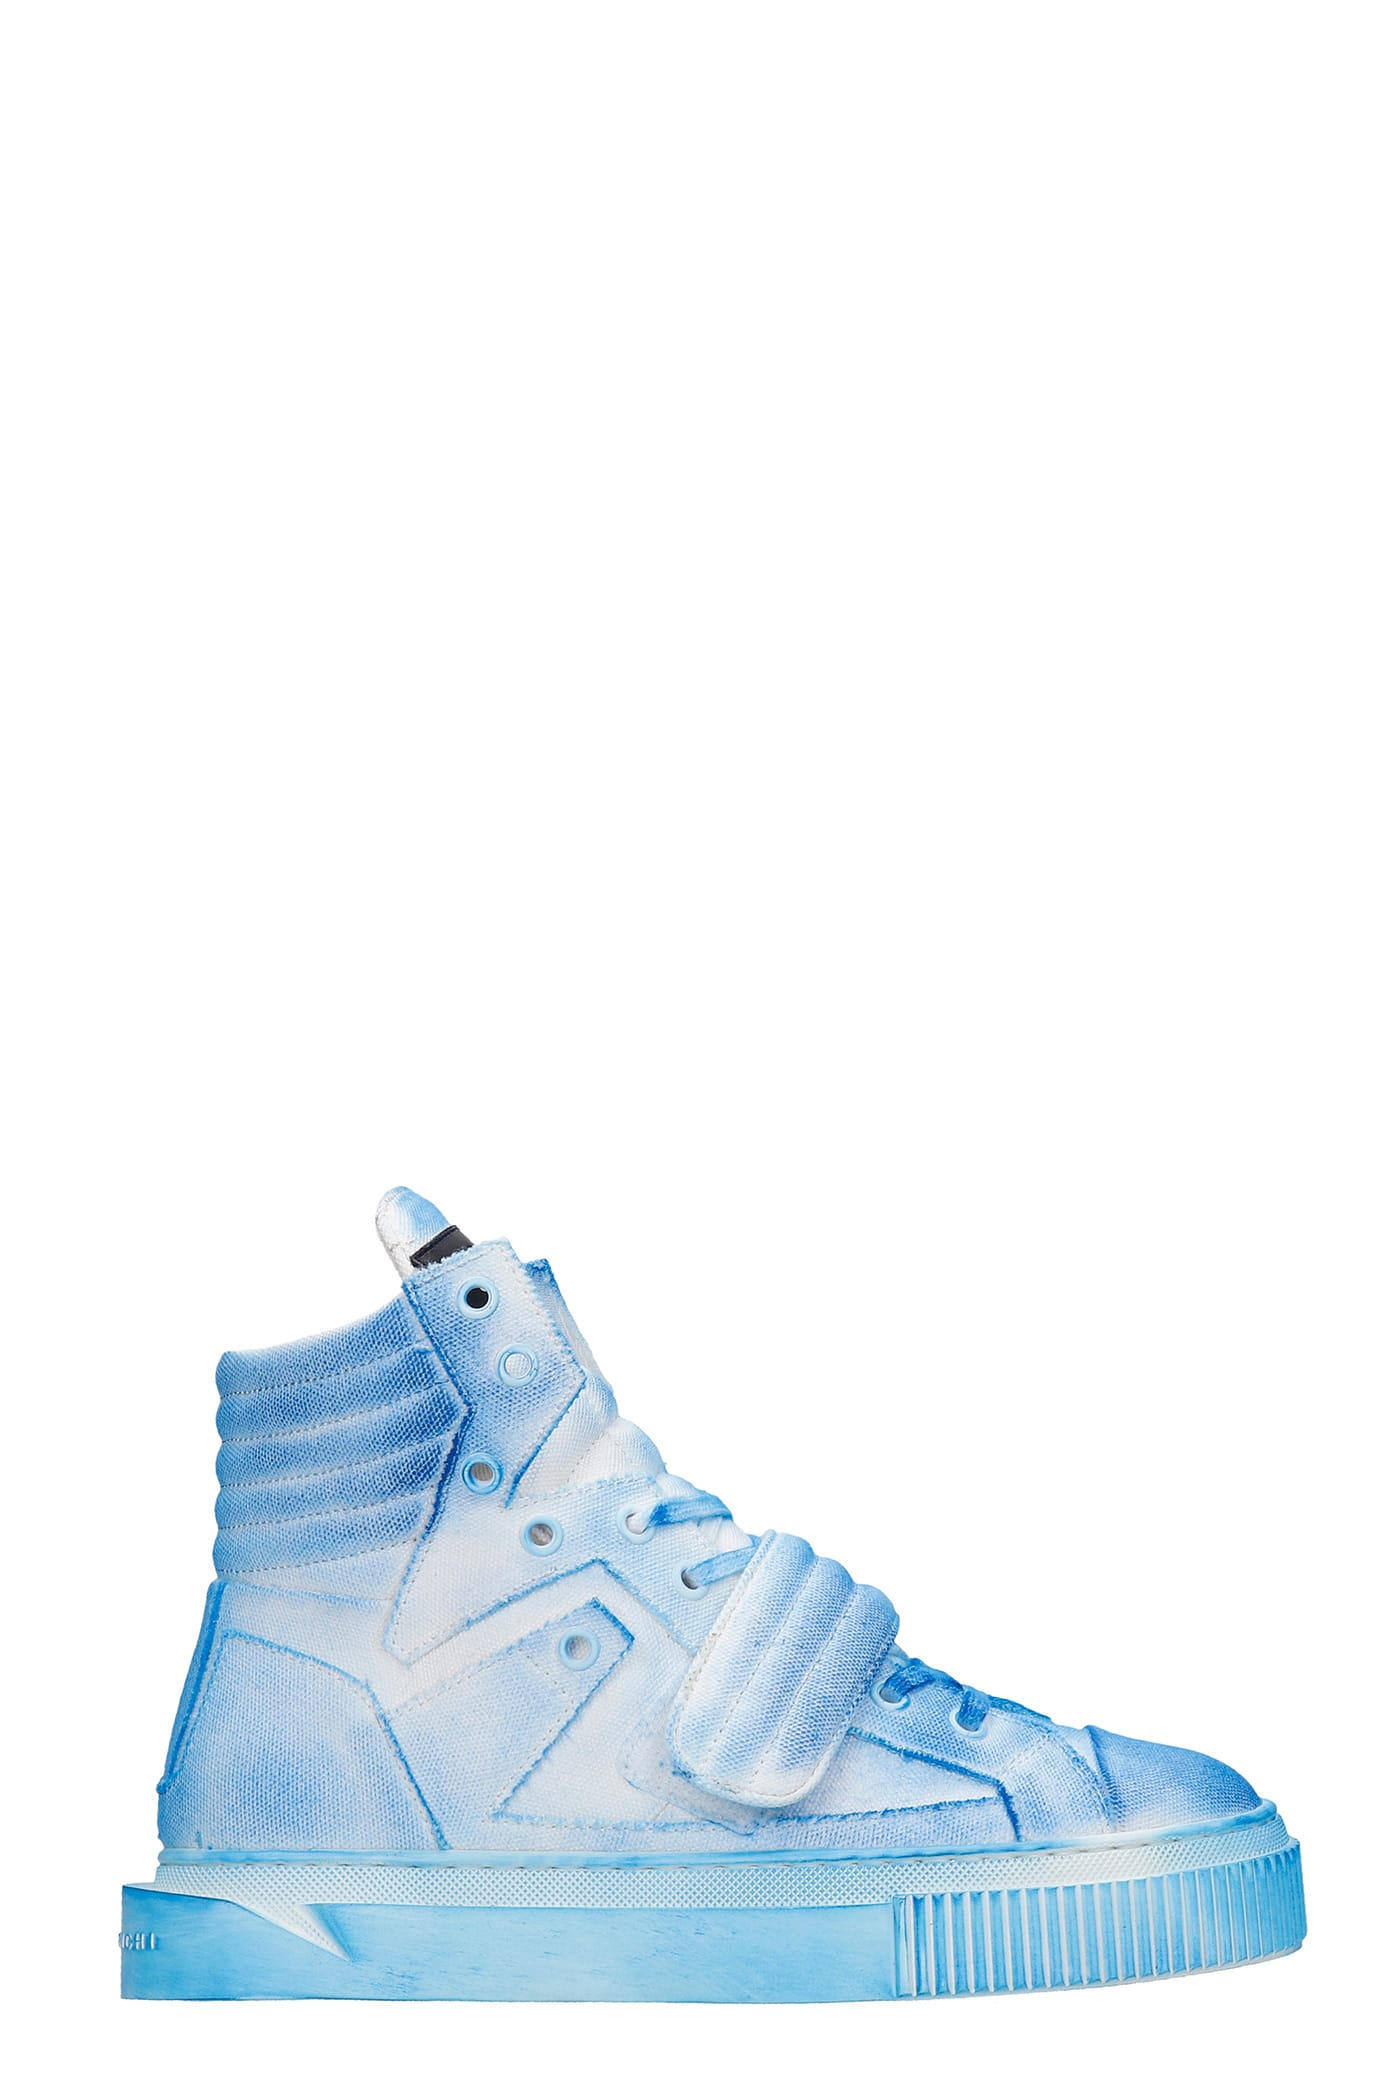 Hypnos Sneakers In Cyan Canvas